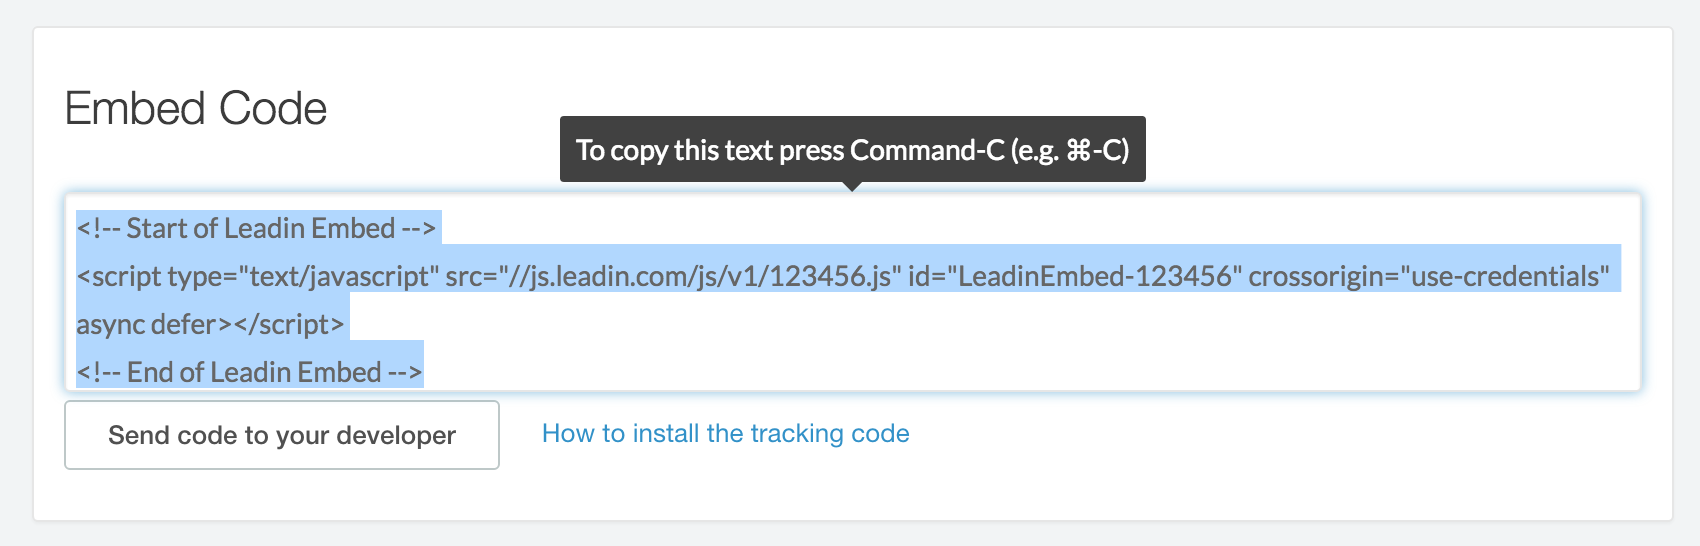 tracking-code-standalone.png